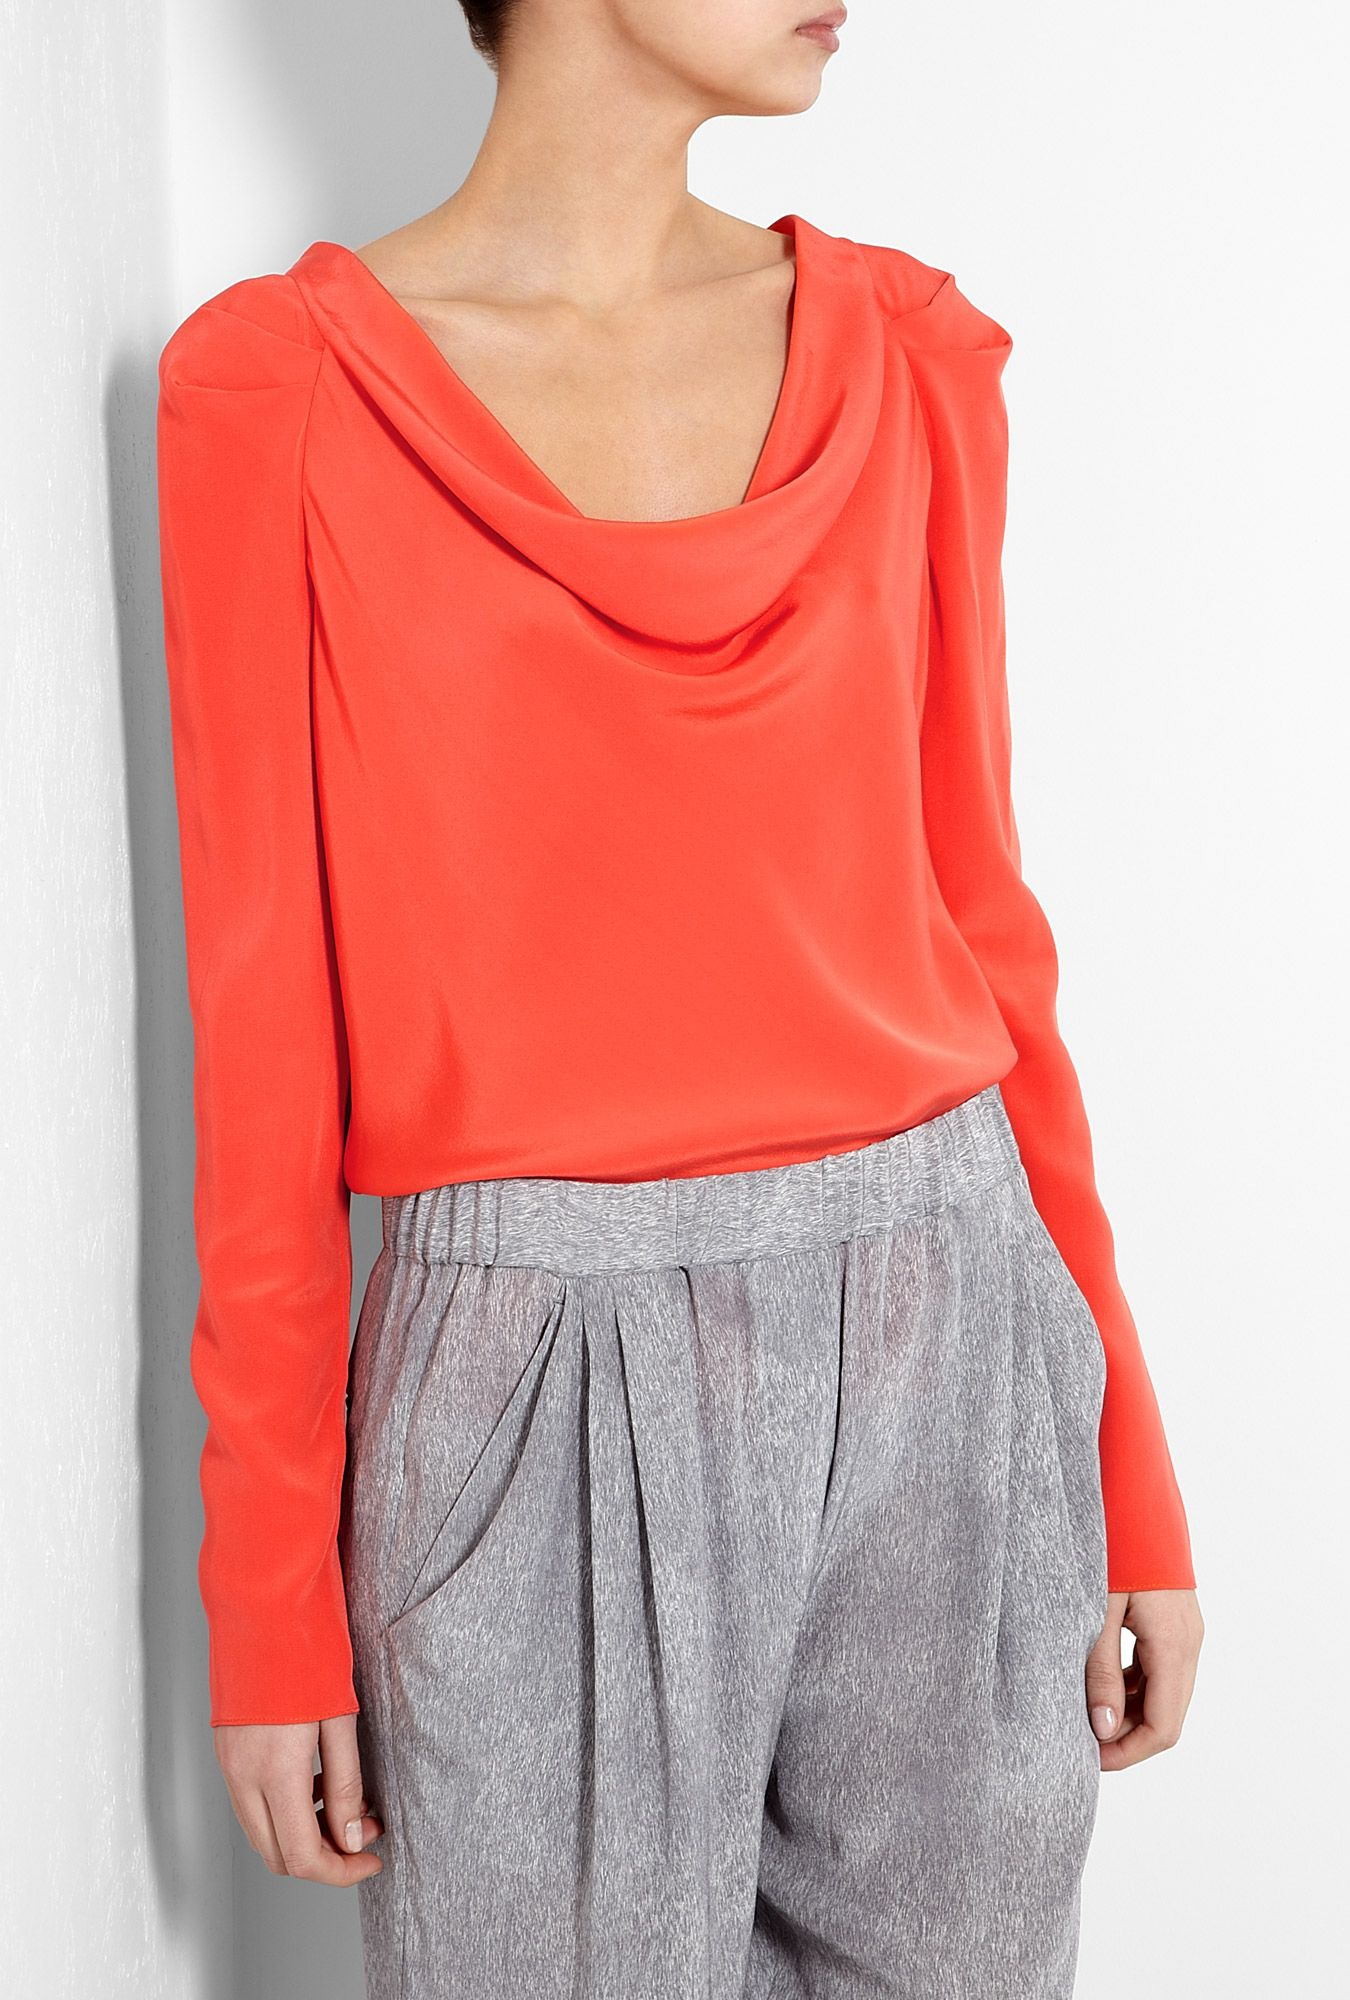 Tres chic cowl neck top from Vanessa Bruno.